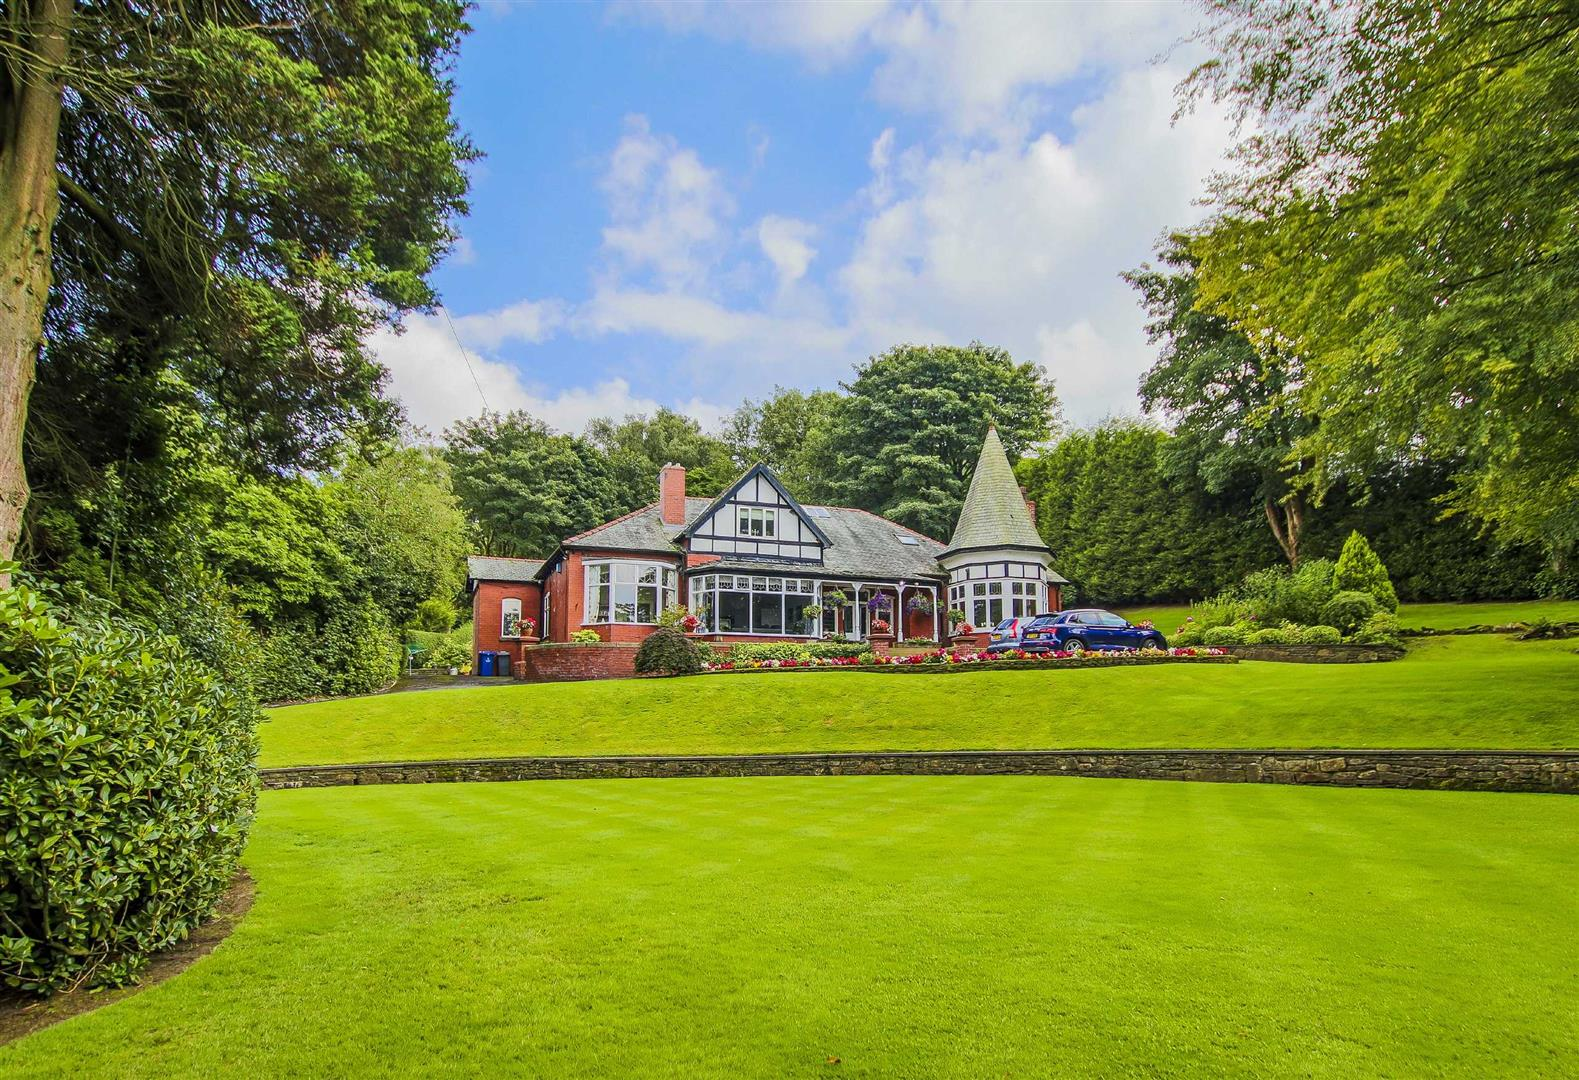 5 Bedroom Detached House For Sale - Main Image